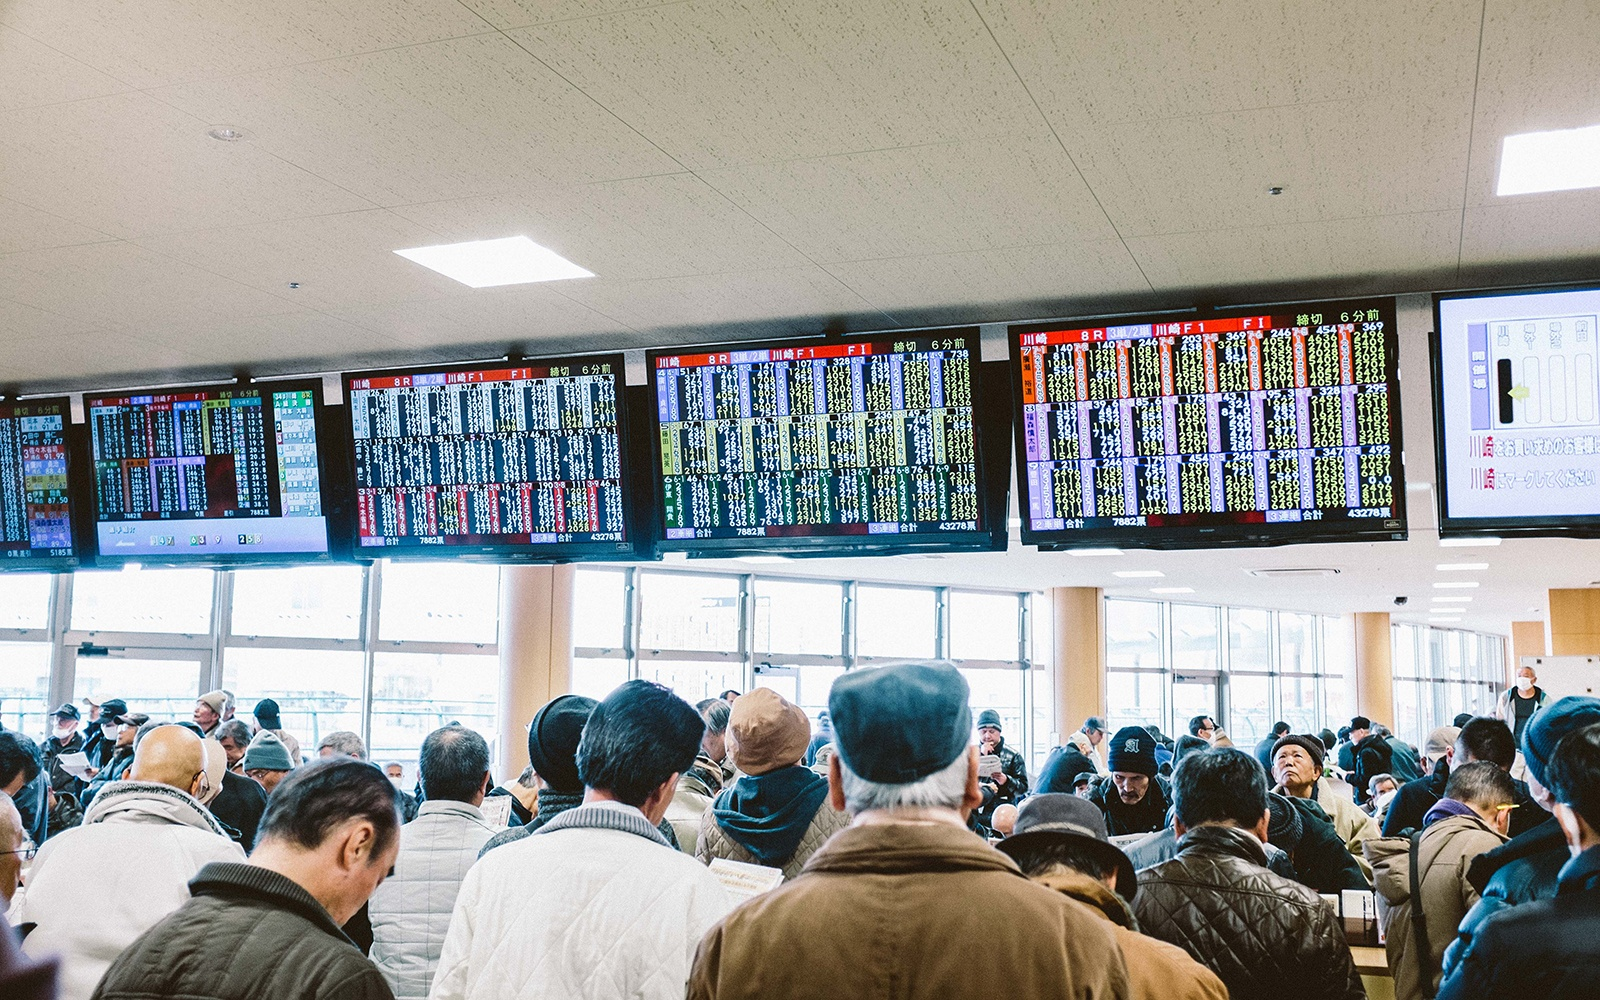 More bettors can be found inside the velodrome watching videos screens than watching the live races themselves